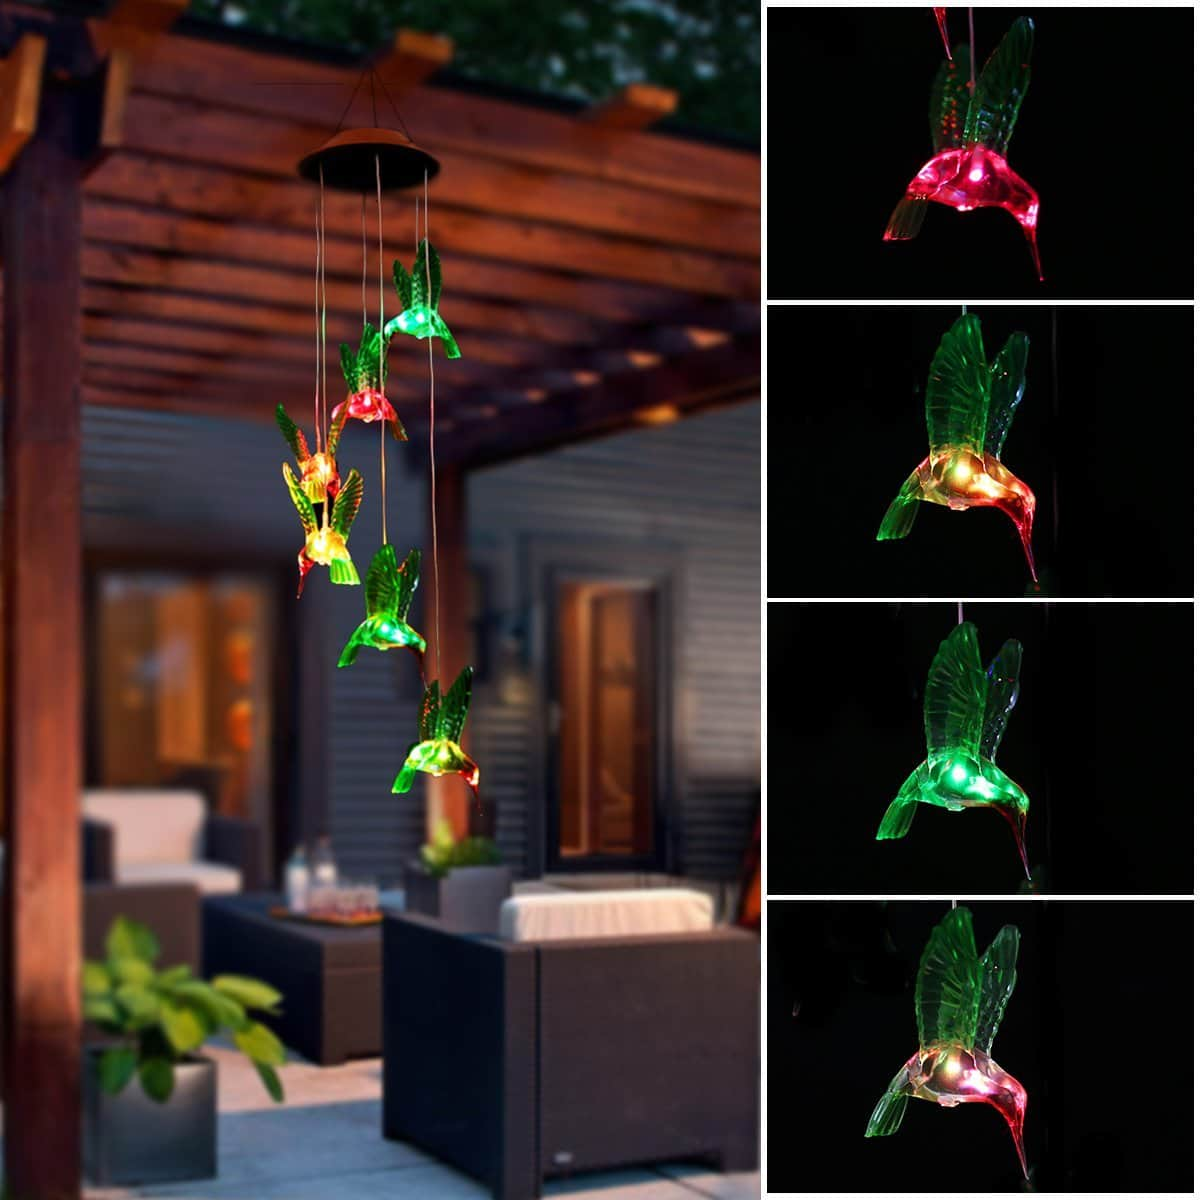 Color-Changing LED Solar Mobile Wind Chime, Pathonor LED Changing Light Color Waterproof Six Hummingbird Wind Chimes For Home/ Party/ Night Garden Decoration humming bird $18.42